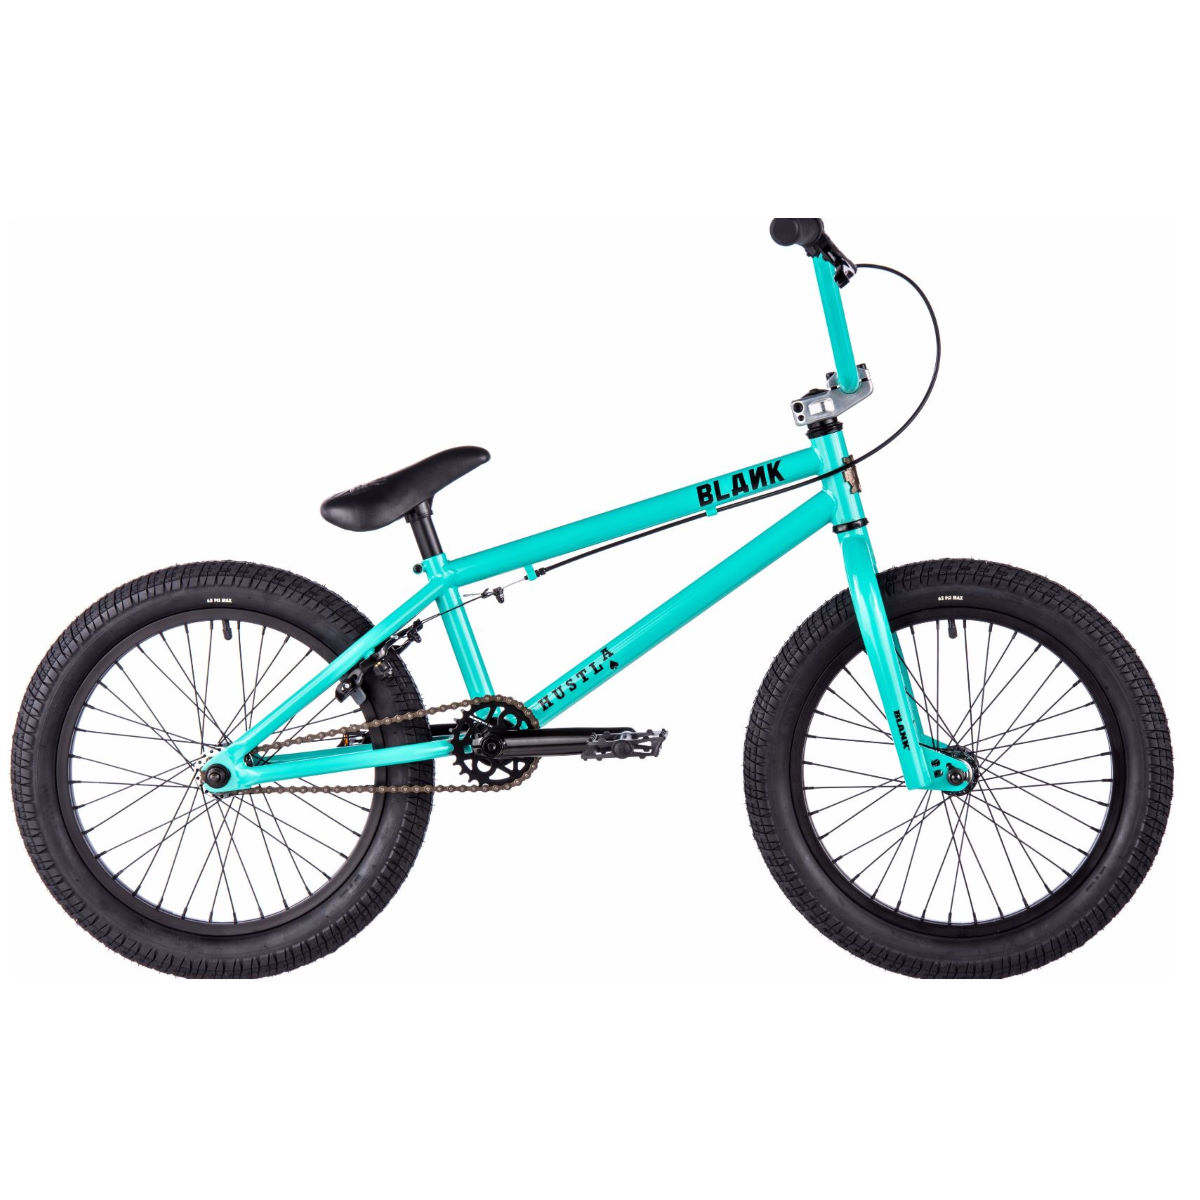 BMX Blank Hustla 18 pouces (2017) - One Size Stock Bike Gloss Teal BMX Street